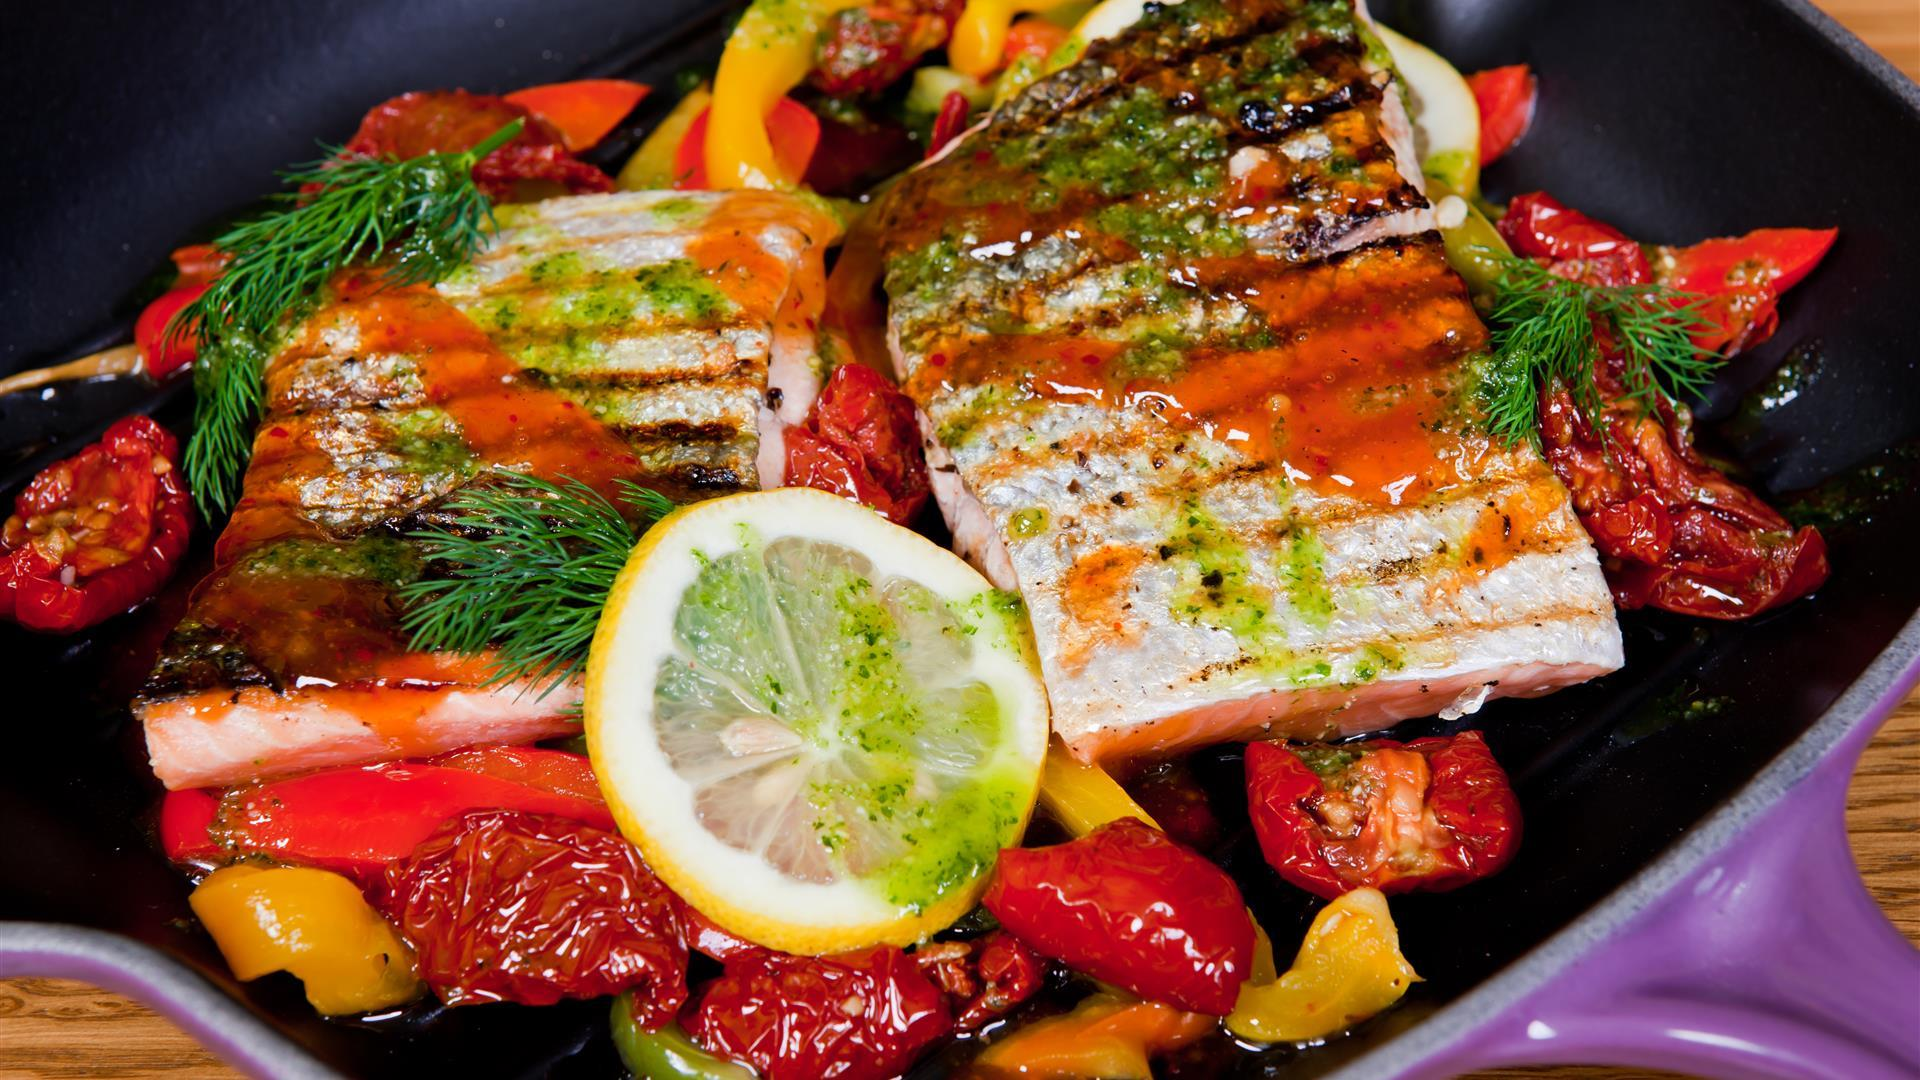 Image is of a fish, vegetables and lemon slice dish